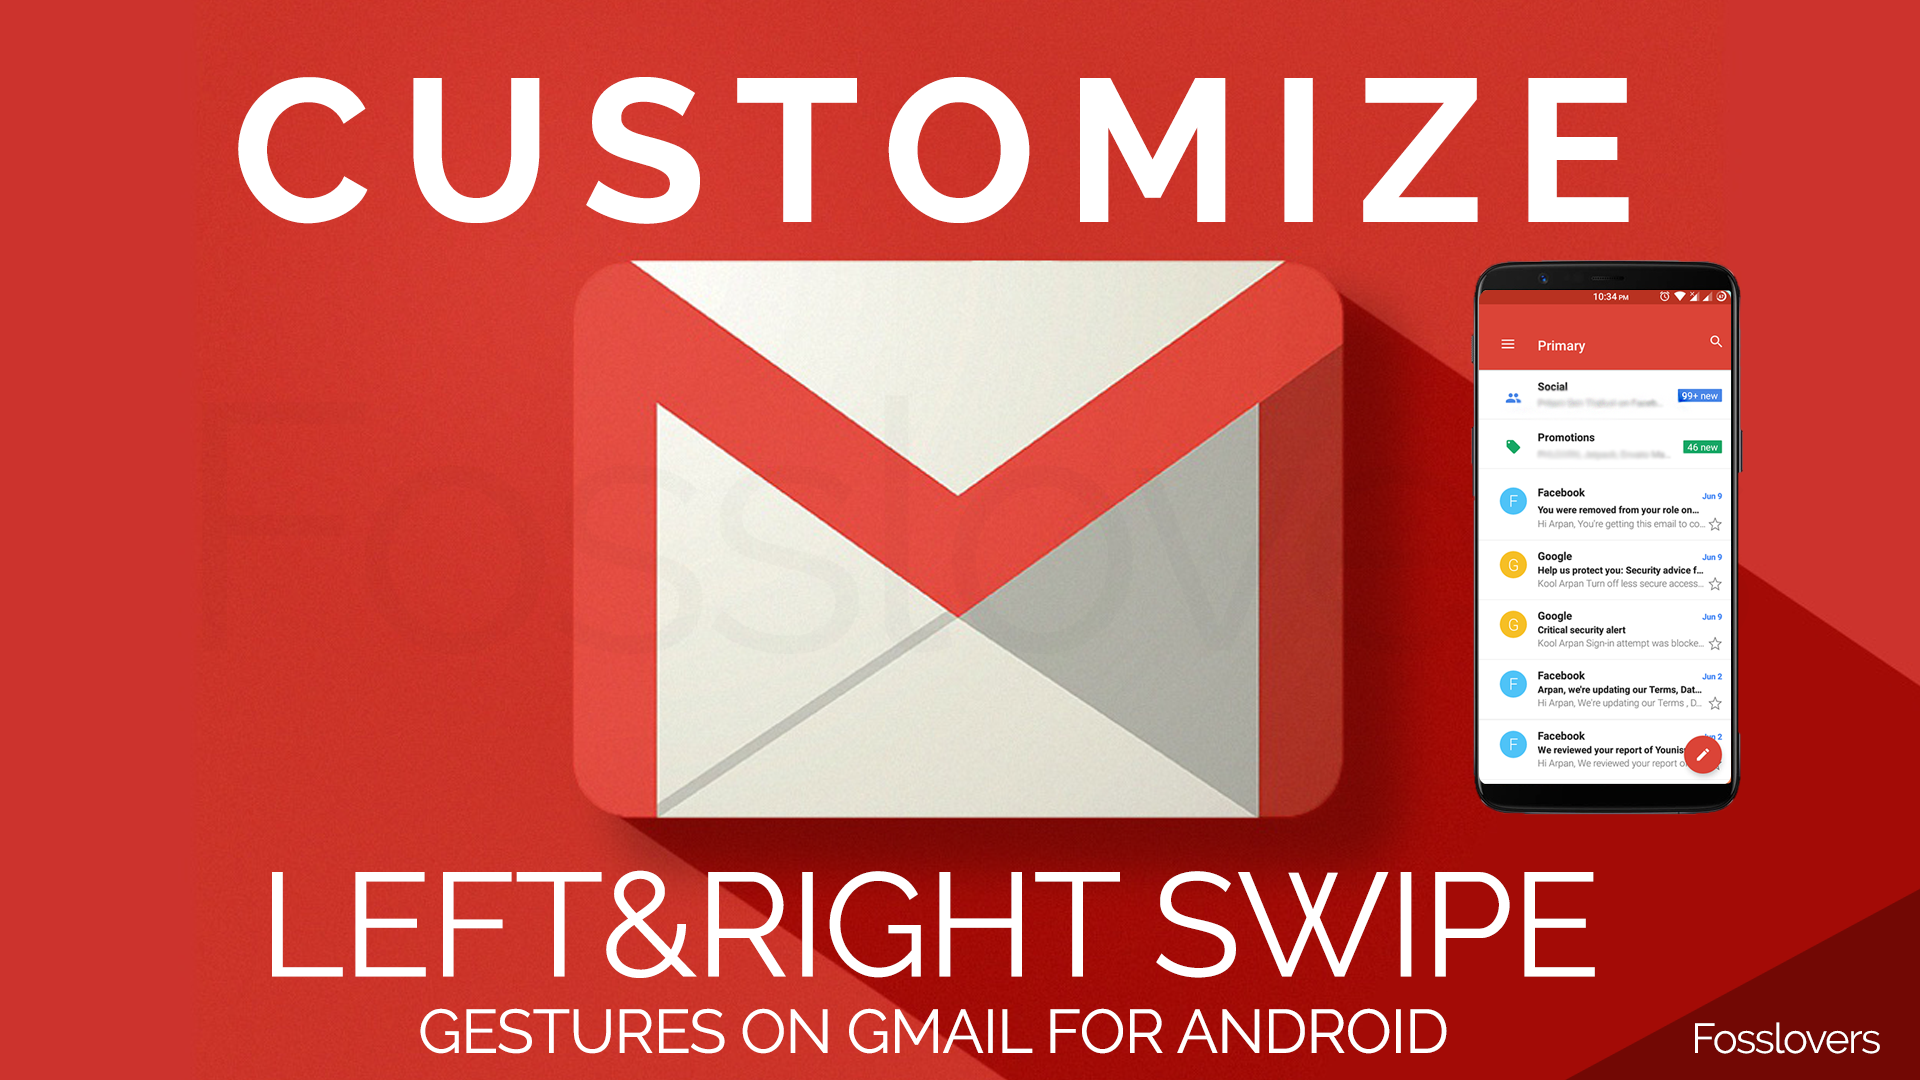 How to Customize Left and Right Swipe Gestures on Gmail for Android